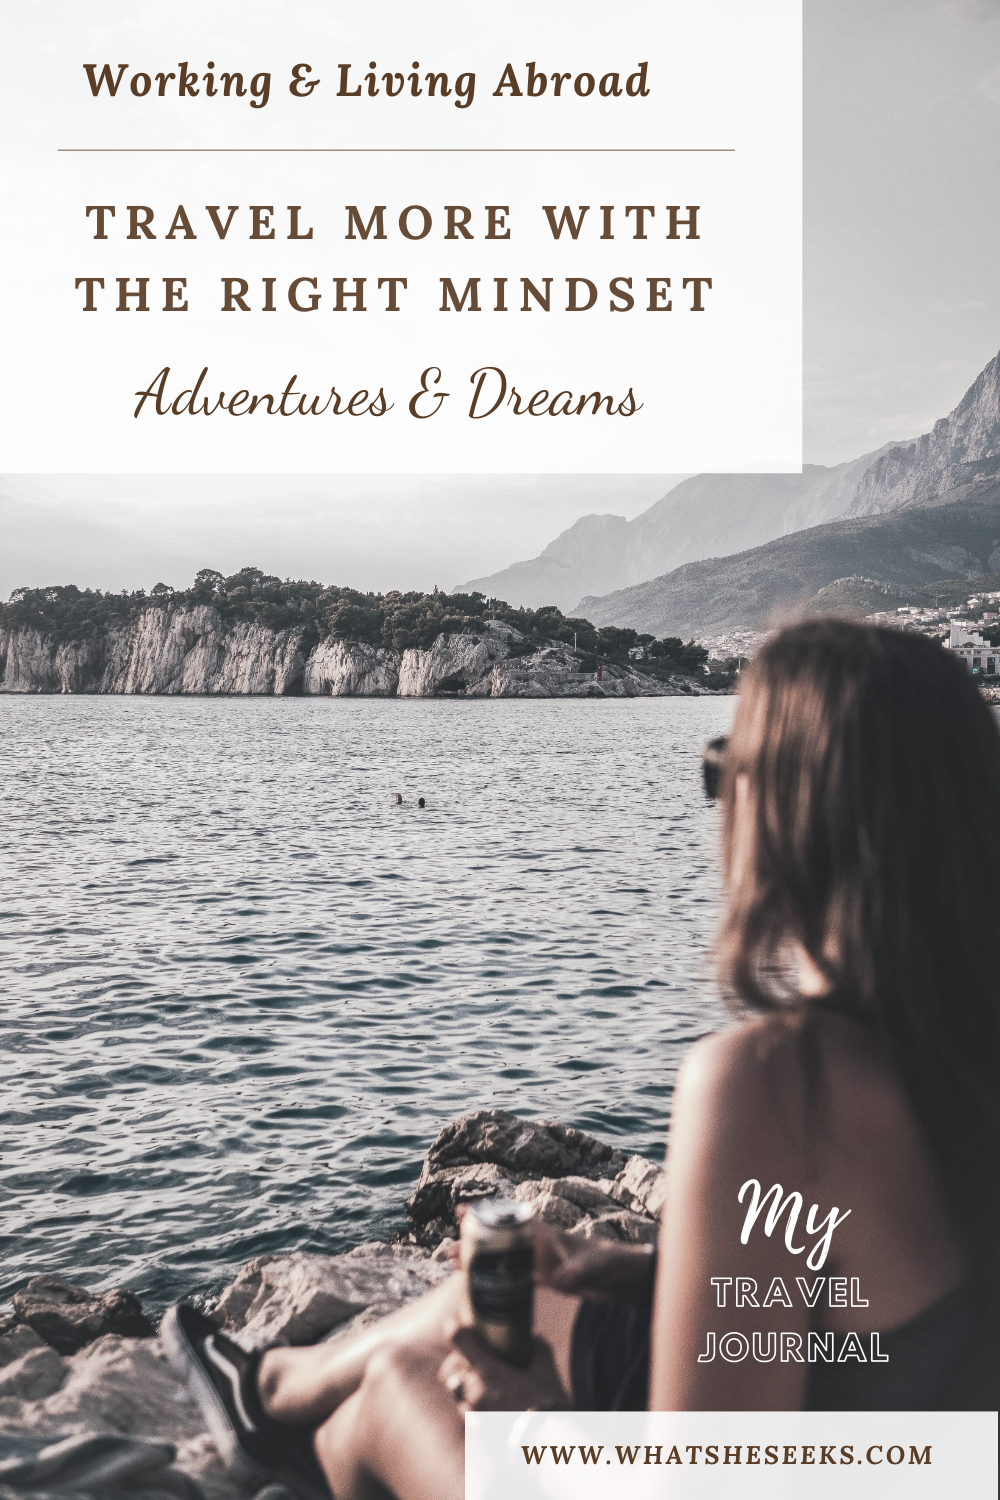 Have you considered finding work abroad or taking an extended holiday? Get the travel mindset and step out of your comfort zone. Pursue a life of wanderlust today. #whatsheseeks